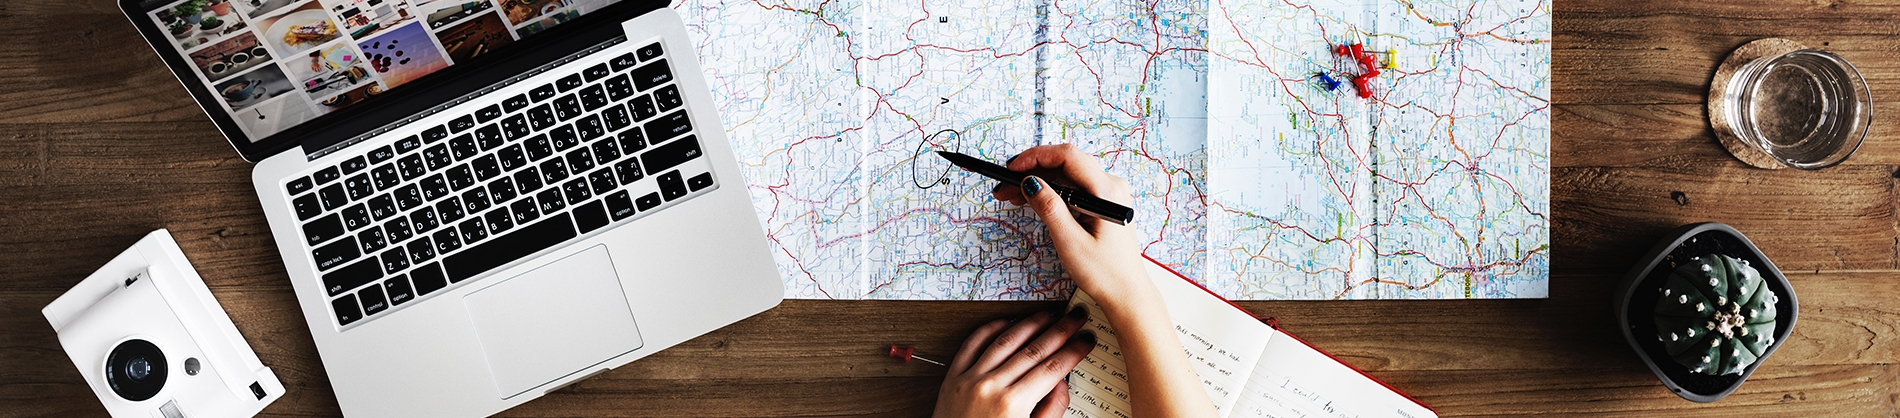 A map open across a wooden table with a laptop and camera at the side